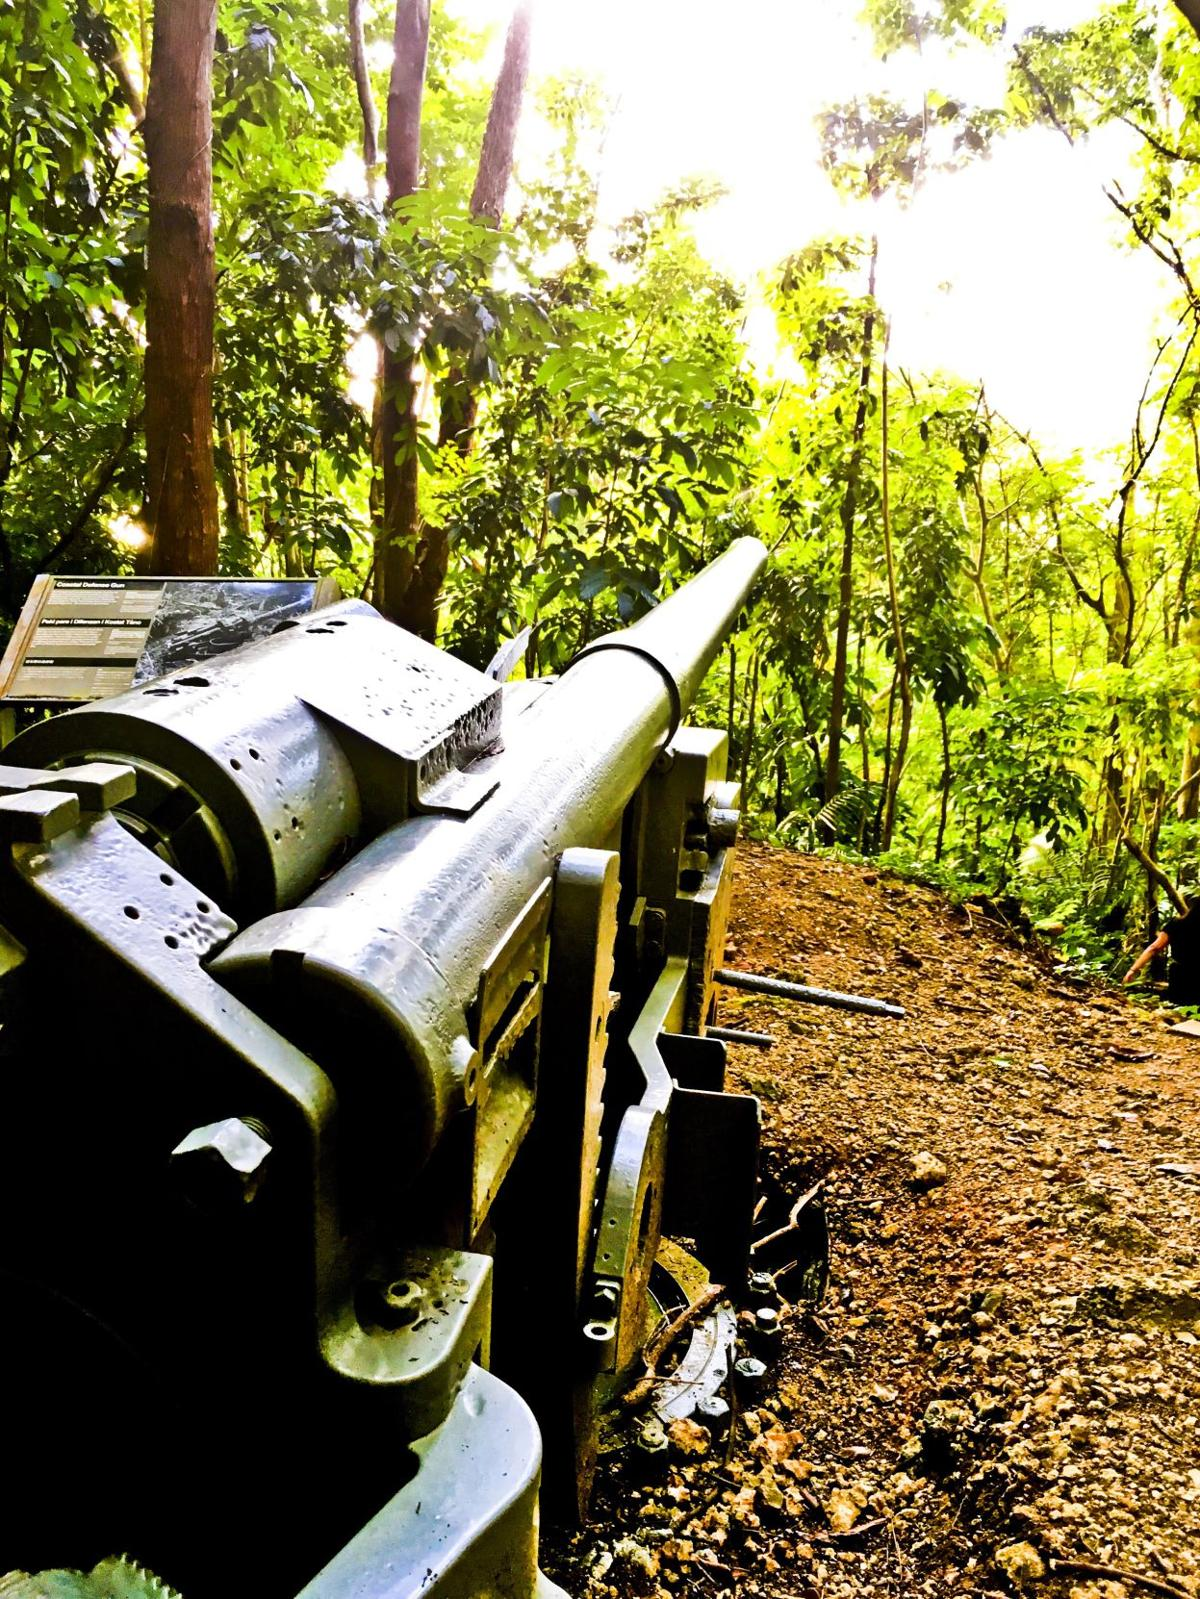 A double dose of Guam history firsthand at Piti Guns and Asan Beach